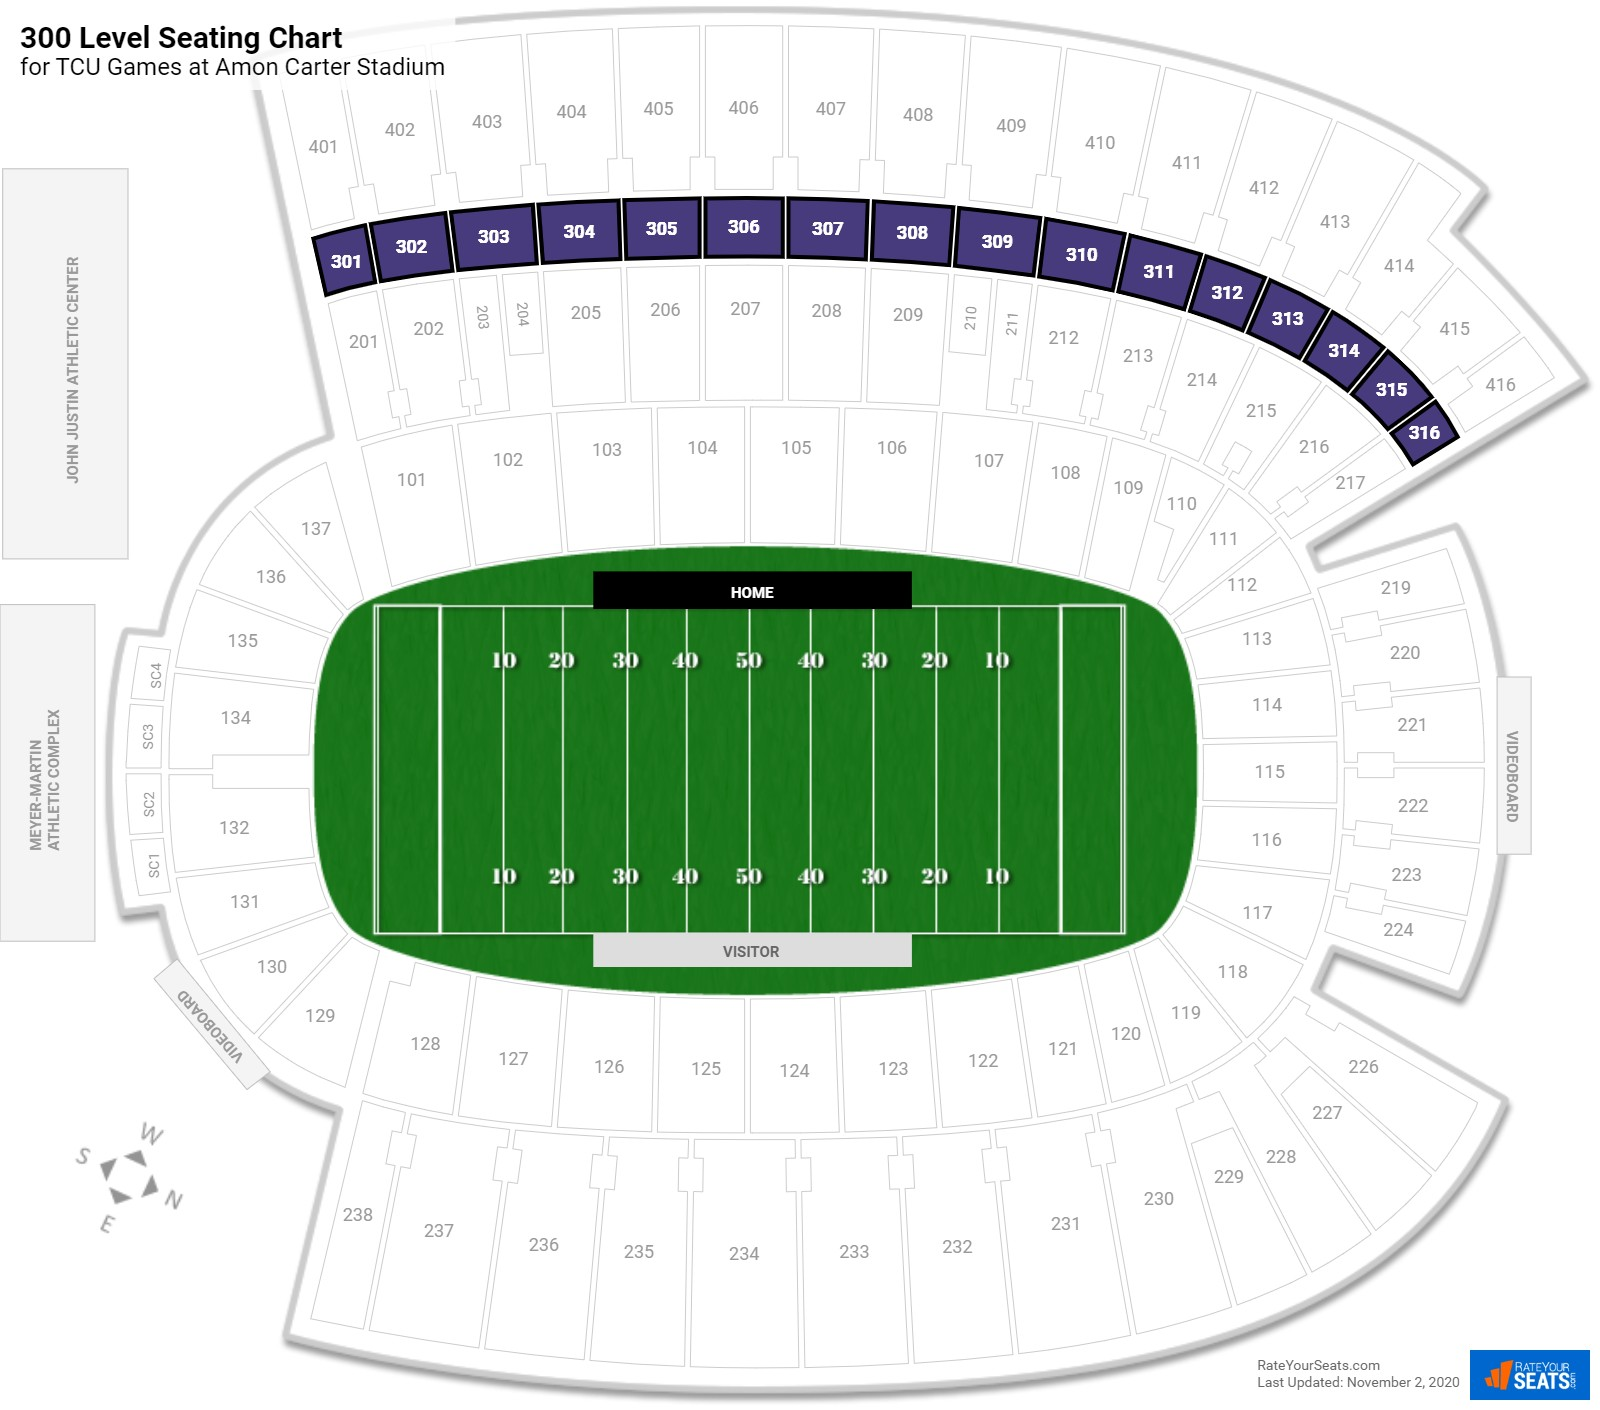 Amon Carter Stadium 300 Level seating chart